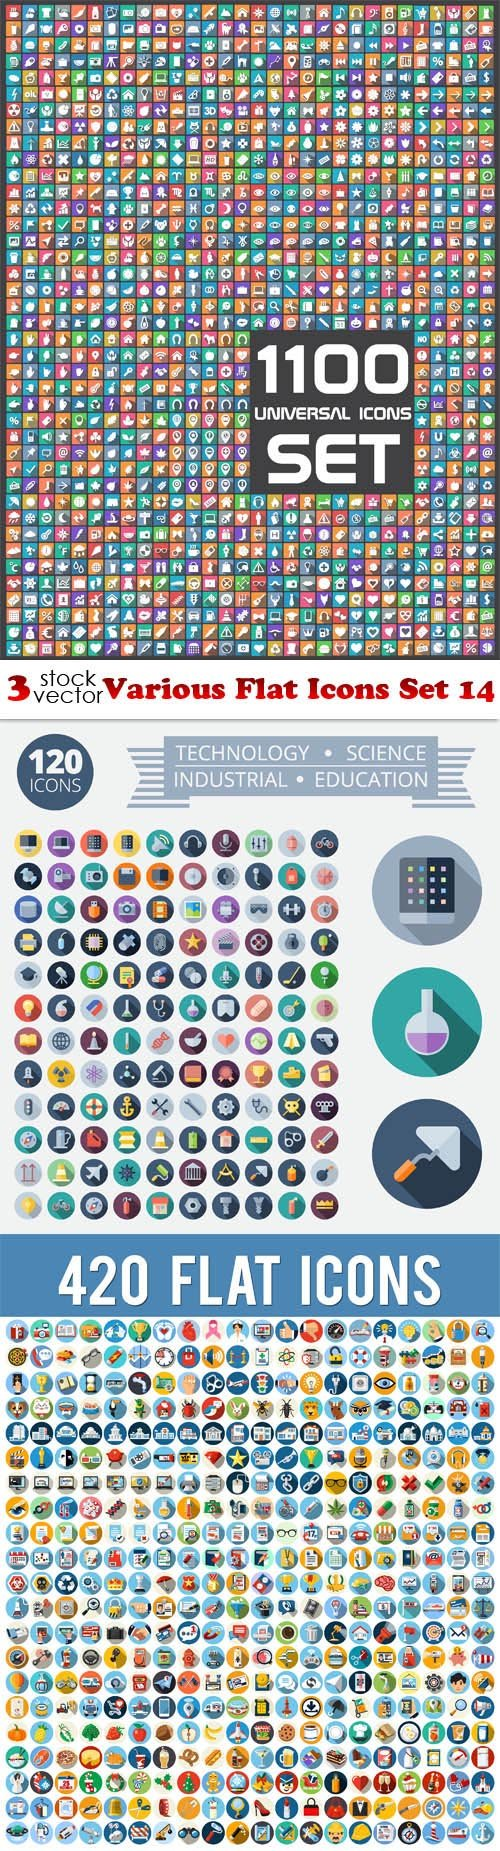 Vectors - Various Flat Icons Set 14